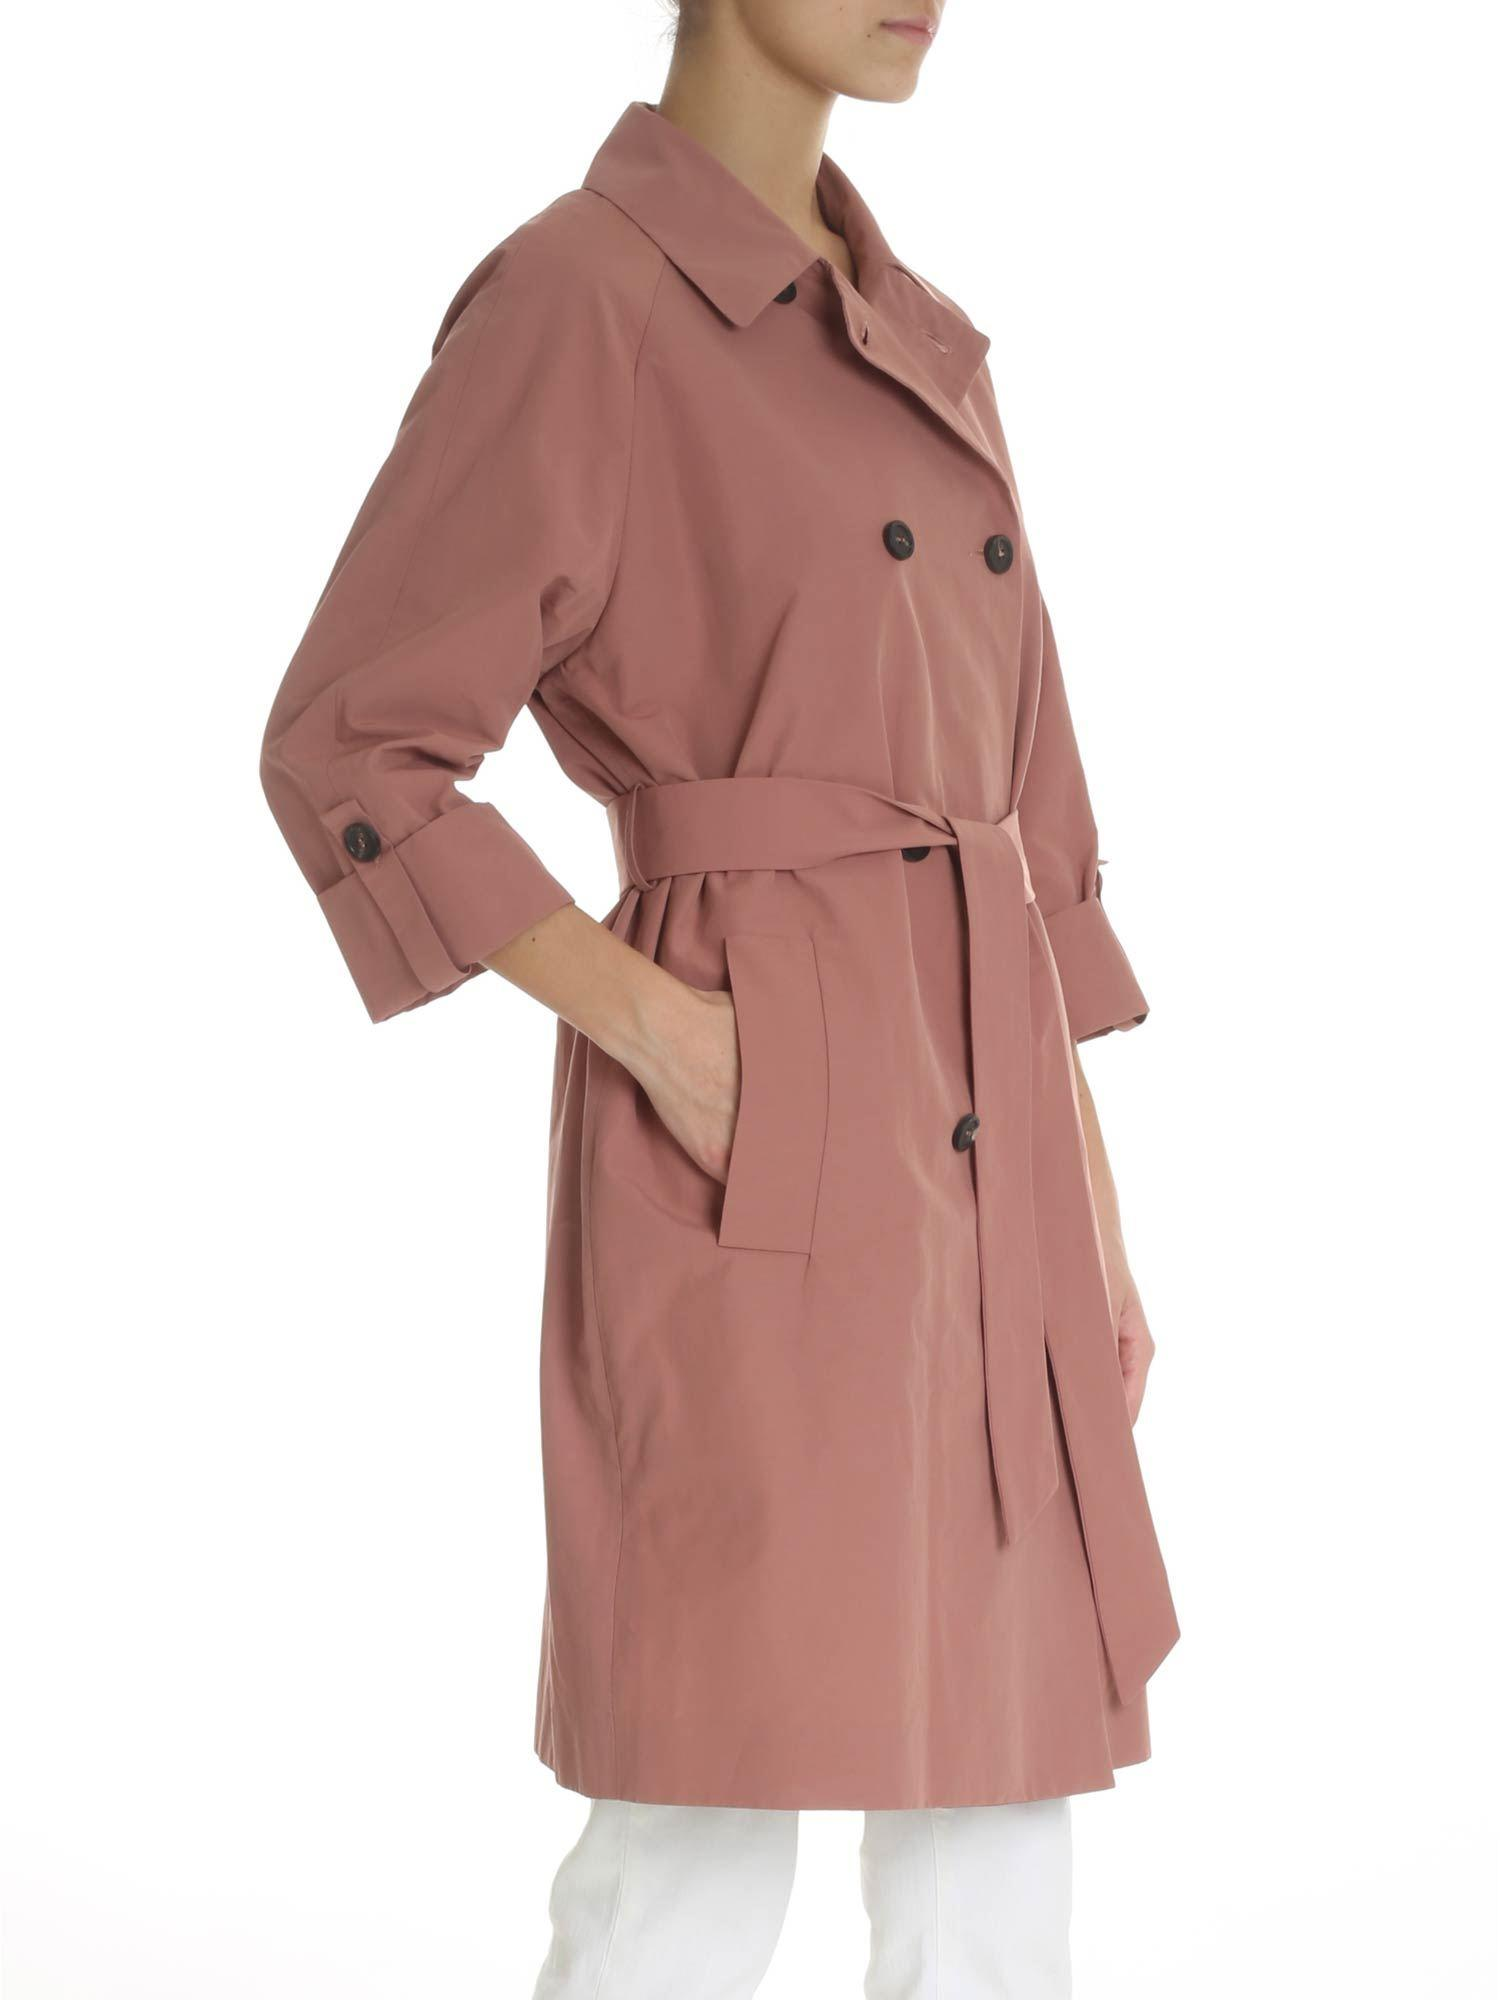 cc0661a4172 peserico-pink-Pink-Three-quarter-Sleeves-Raincoat.jpeg